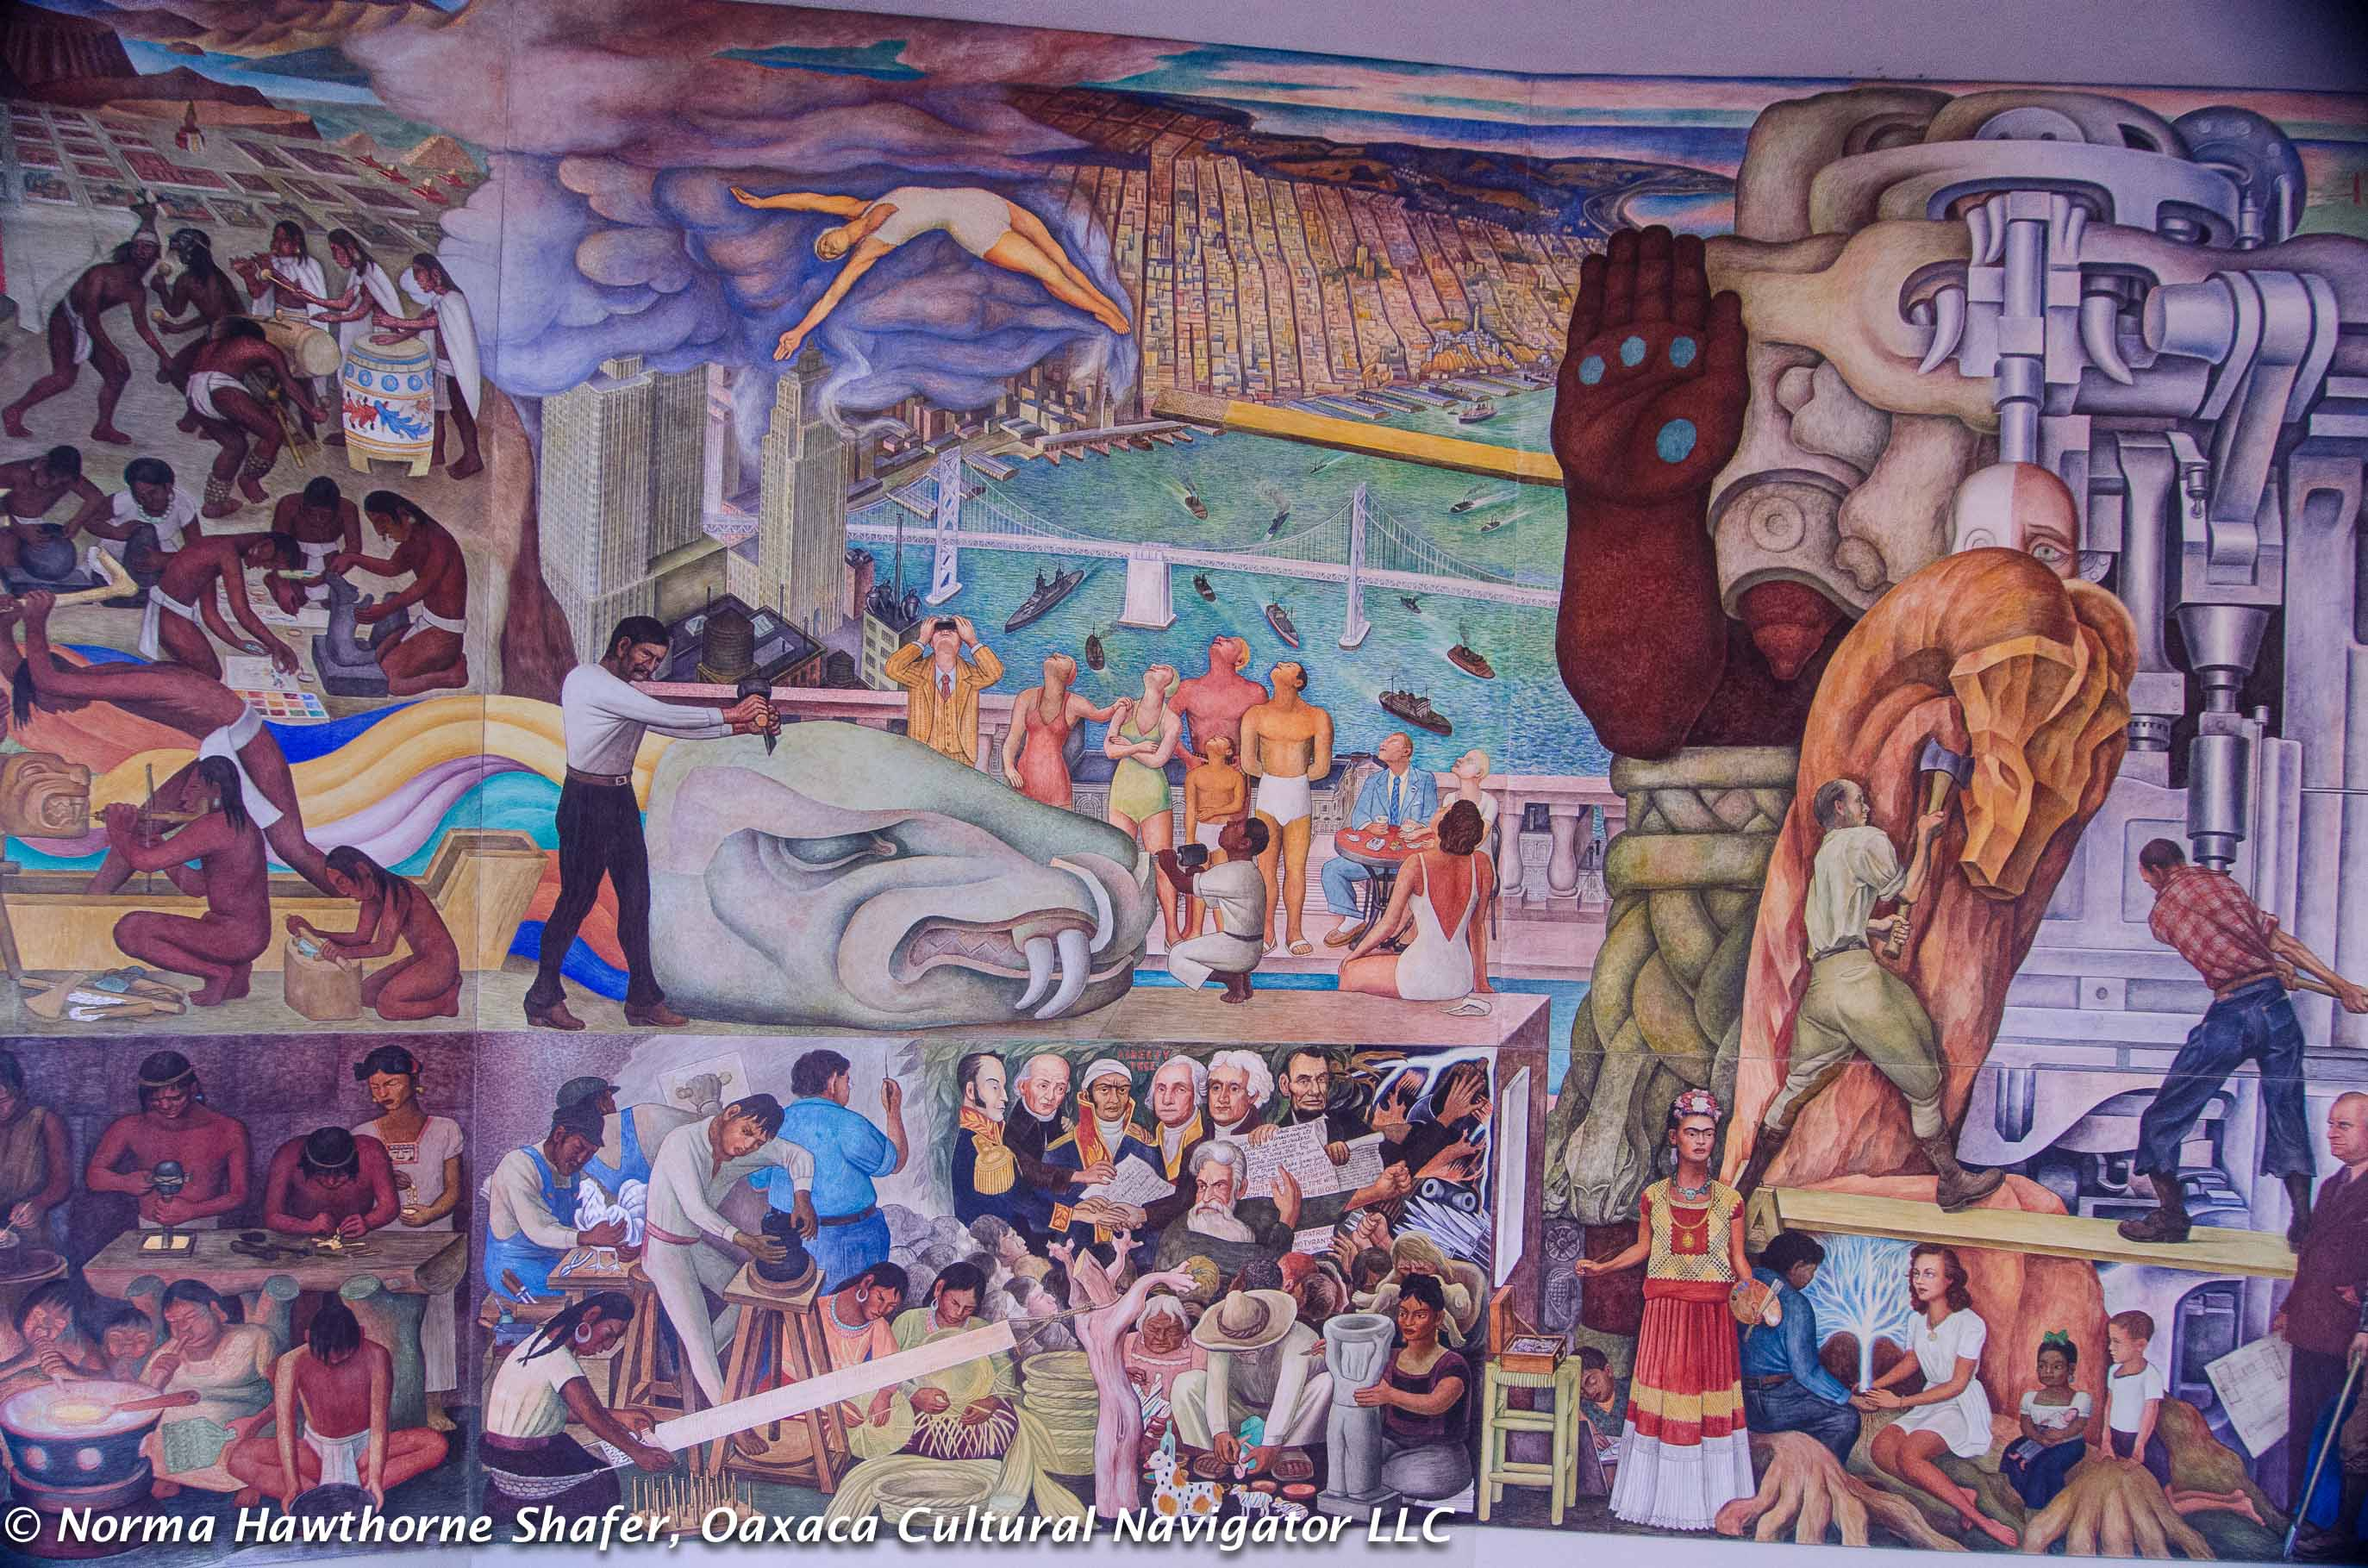 Diego rivera murals in san francisco critical guide for for Diego rivera mural san francisco art institute